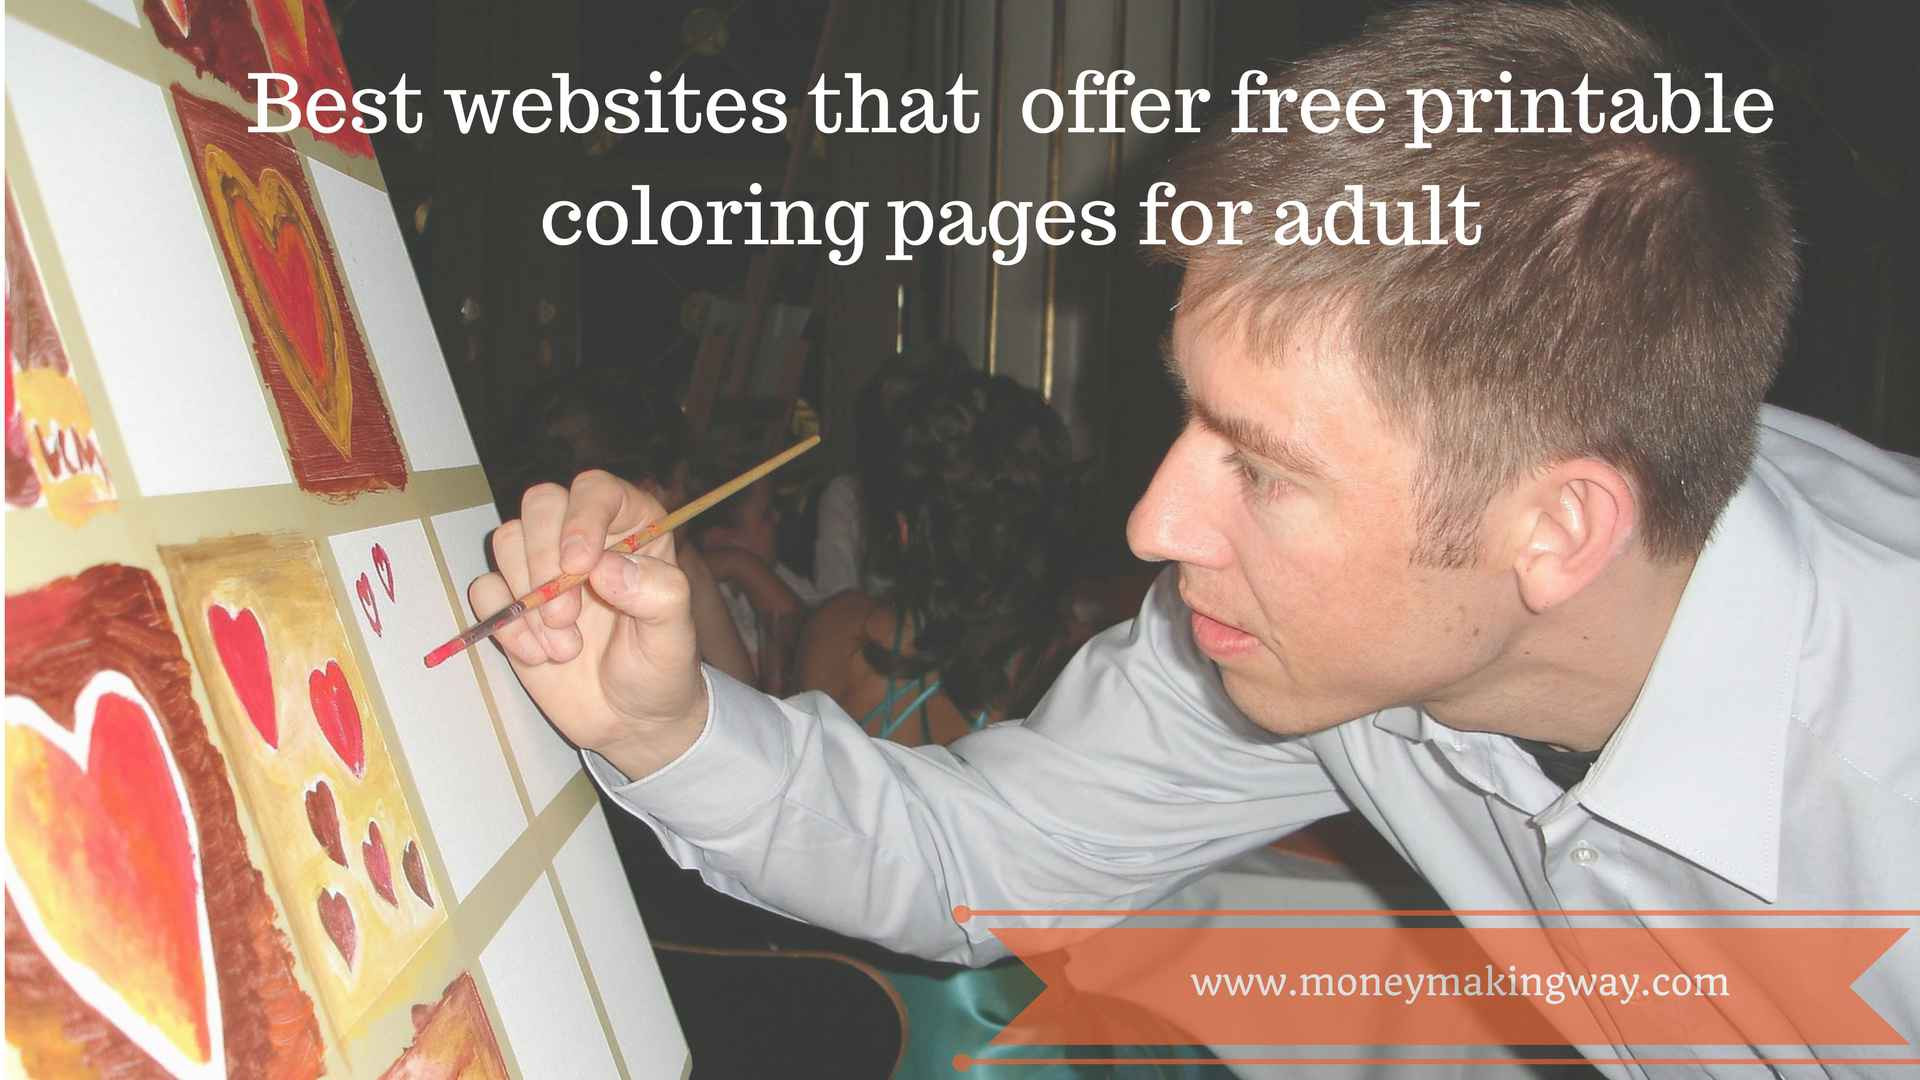 Best ideas about Best Website For Adults . Save or Pin 12 Best websites that offer Free Printable Coloring Pages Now.